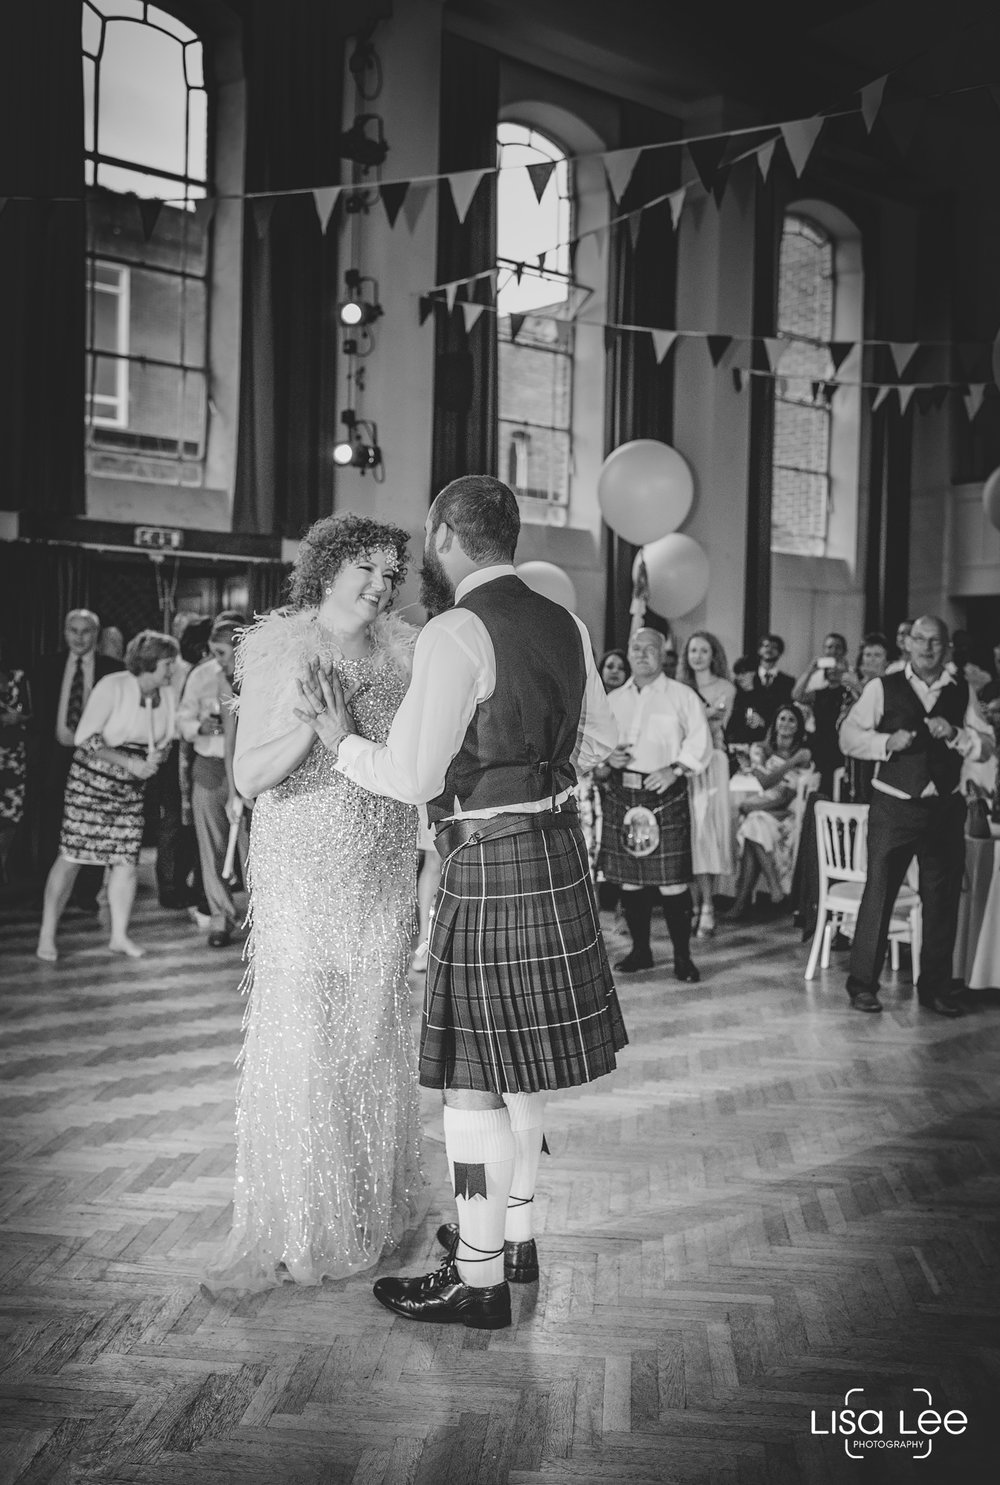 lisa-lee-wedding-photography-first-dance-talbot-heath-1.jpg